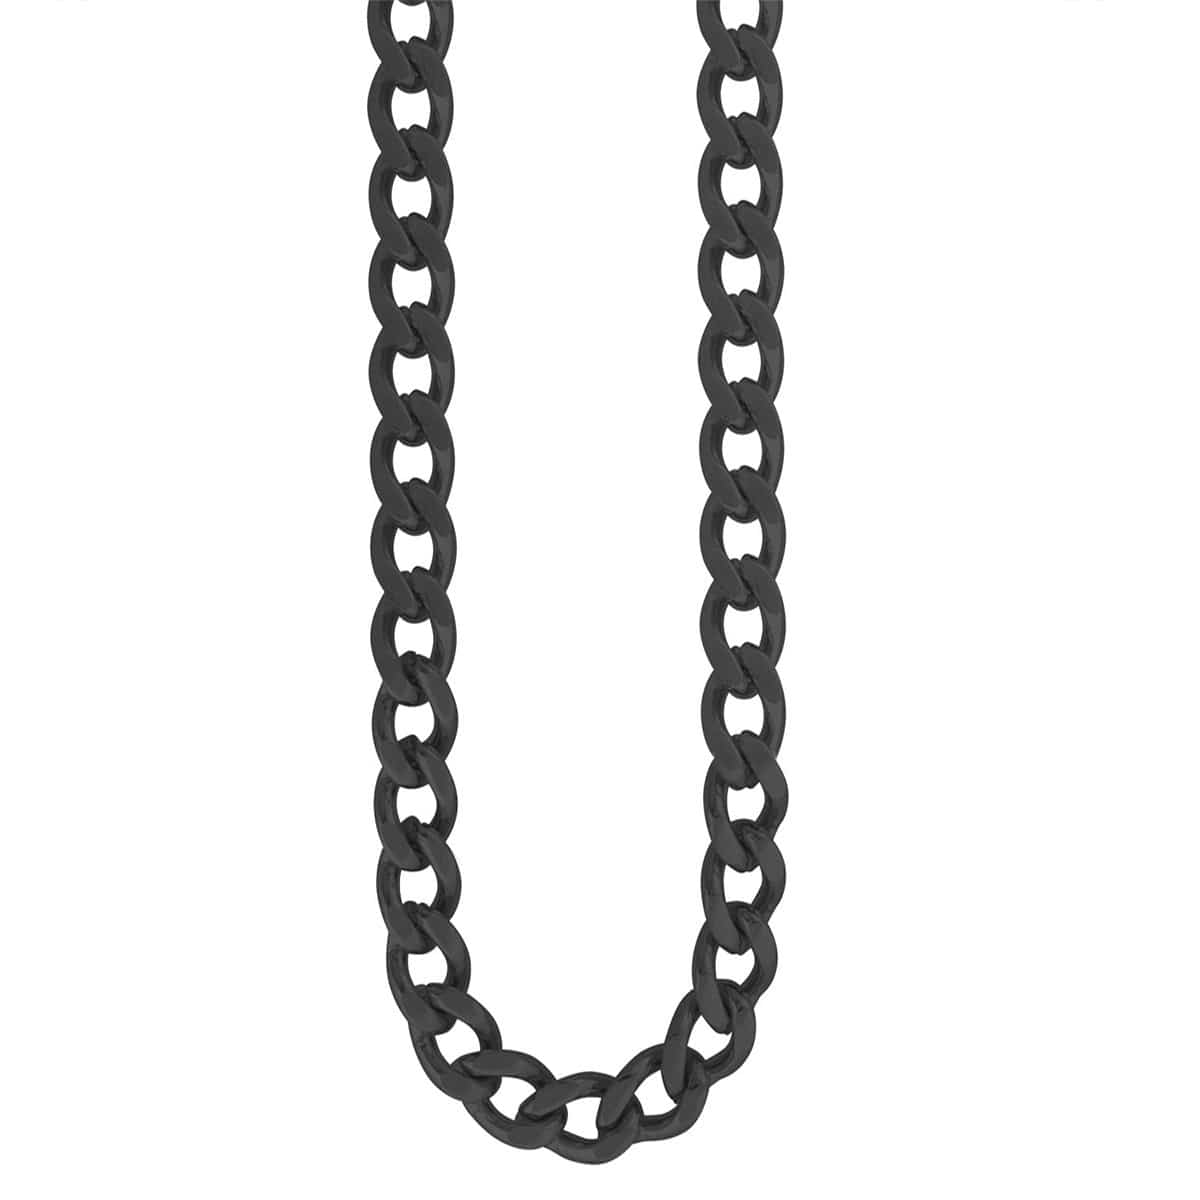 Black Stainless Steel 4mm Flat Curb Polished Chain Chains